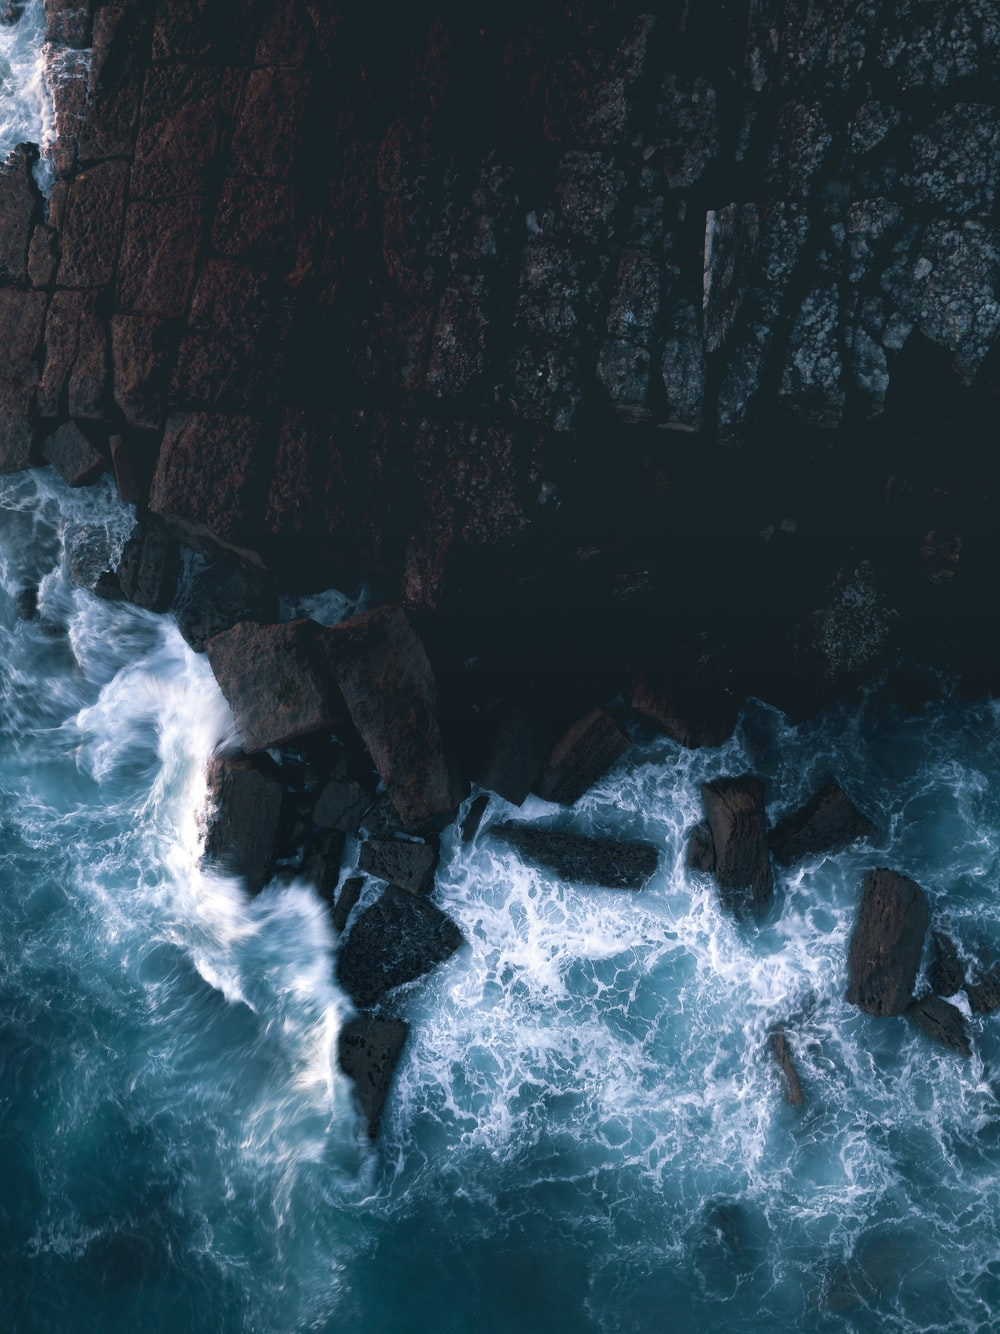 water waves hitting rocks during daytime